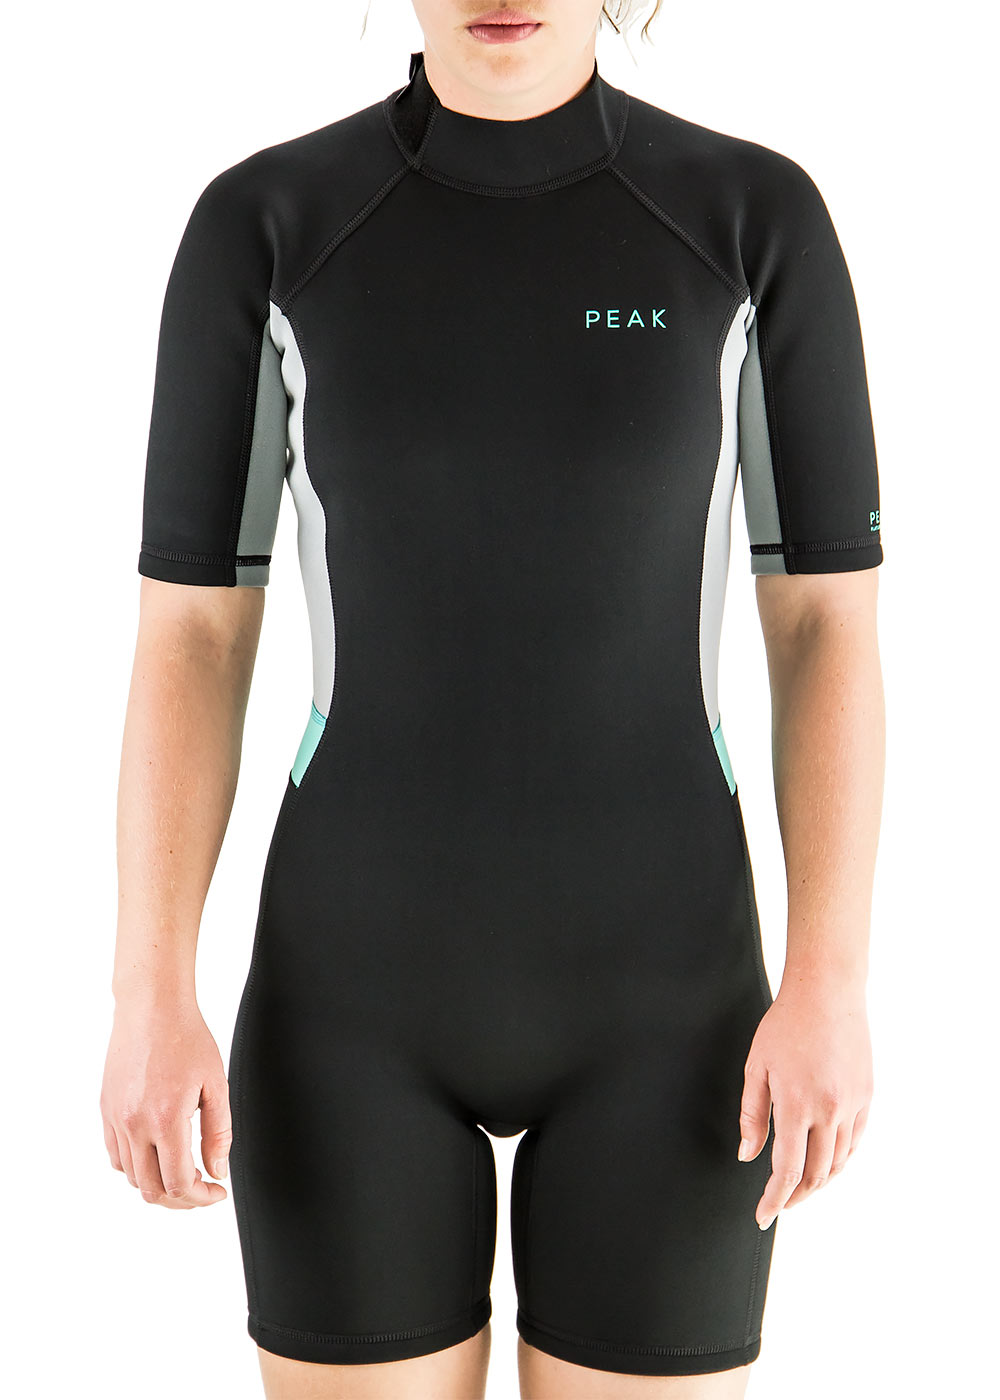 Peak Womens Energy 1.5mm Short Sleeve Spring Suit wetsuit warehouse